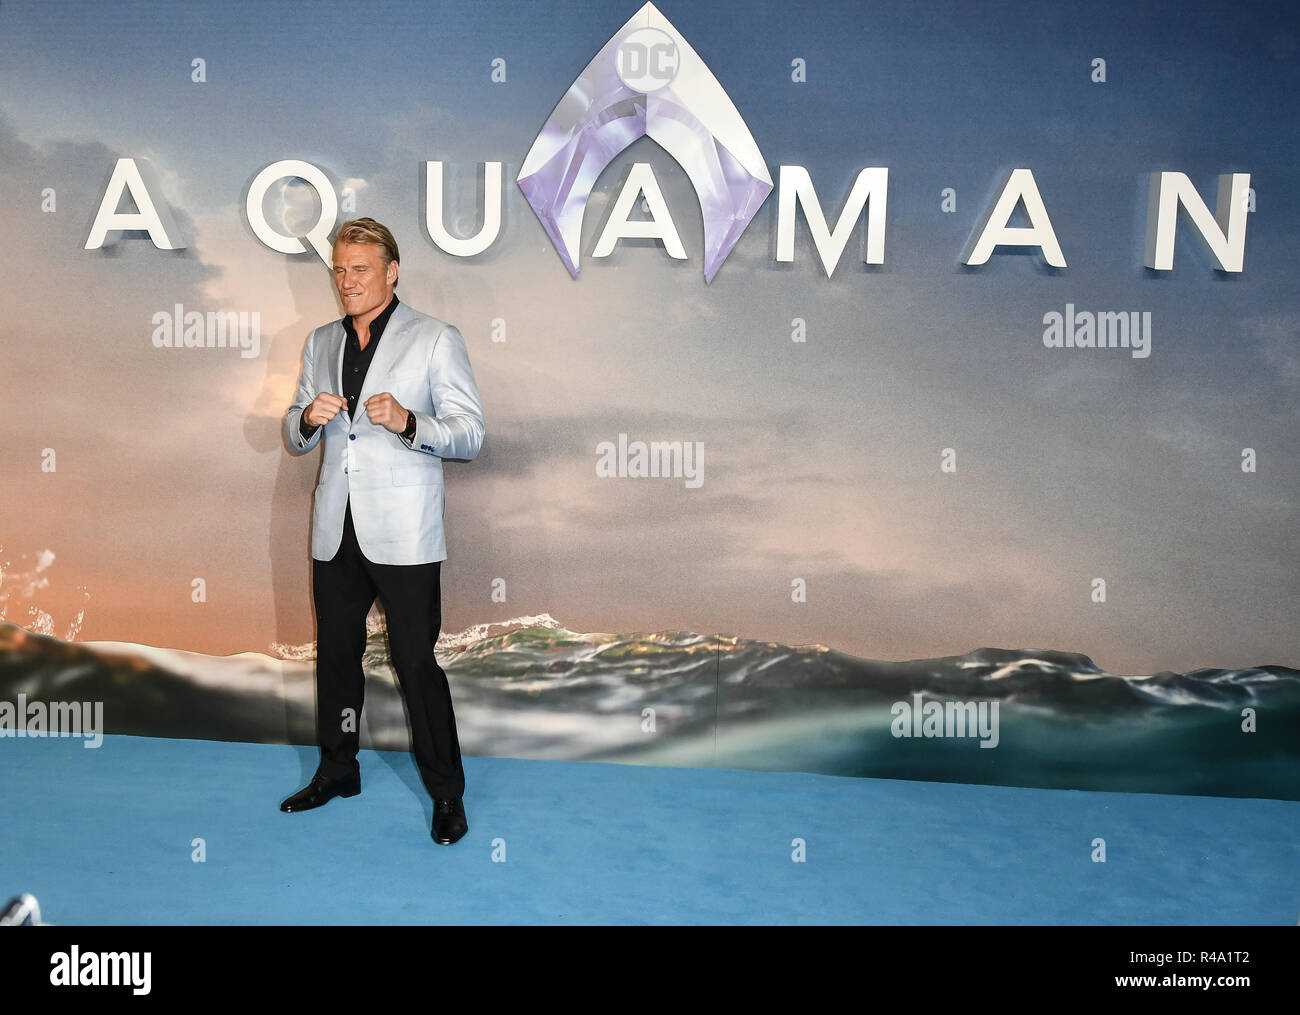 London, UK. 26th November, 2018. Dolph Lundgren arrives at Aquaman - World Premiere at Cineworld Leicester Square on 26 November 2018, London, UK. Credit: Picture Capital/Alamy Live News - Stock Image